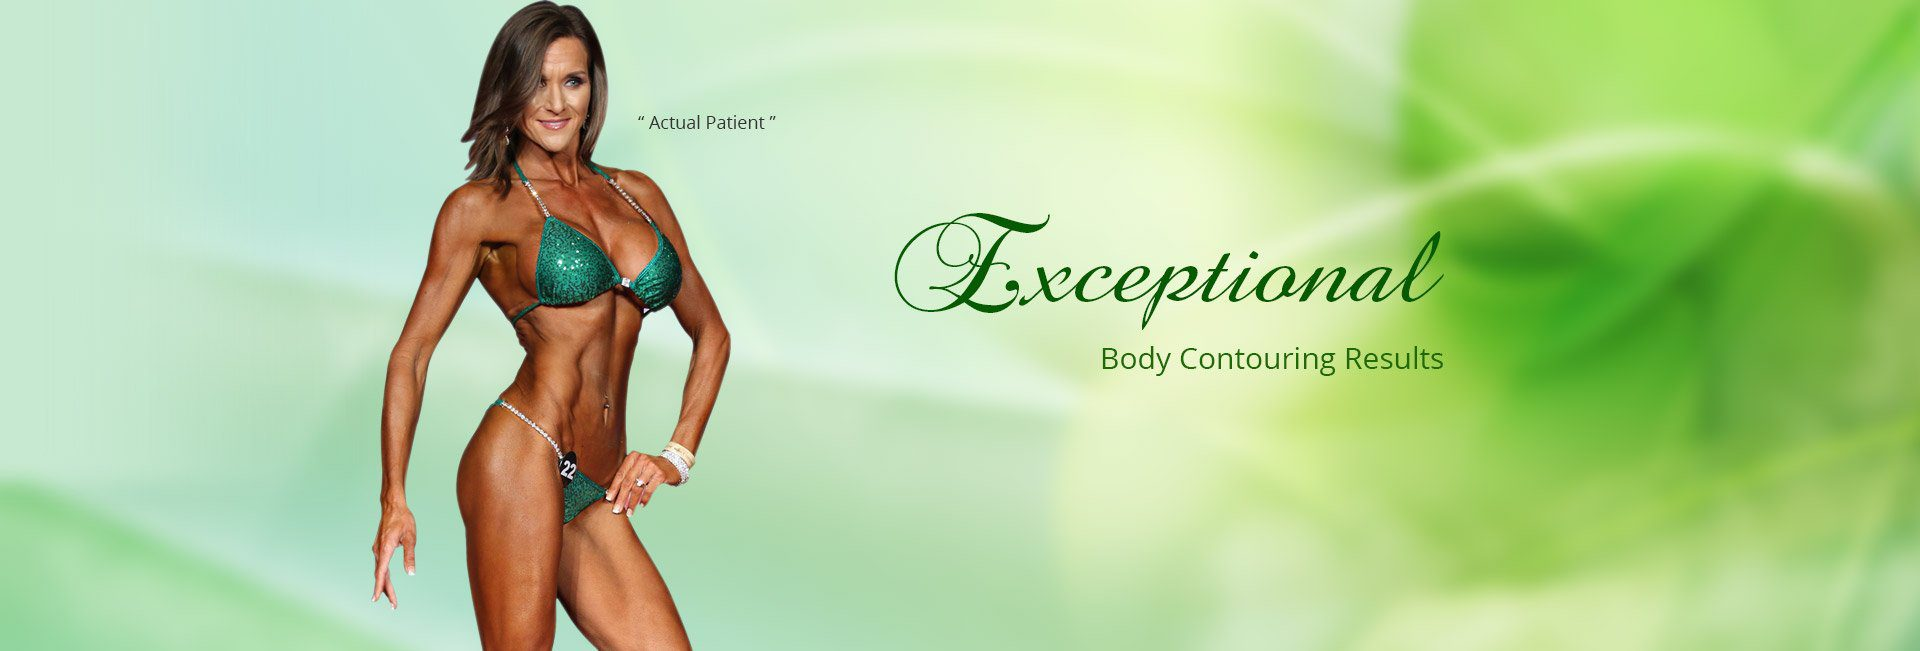 SD Body Contouring Cosmetic Surgery